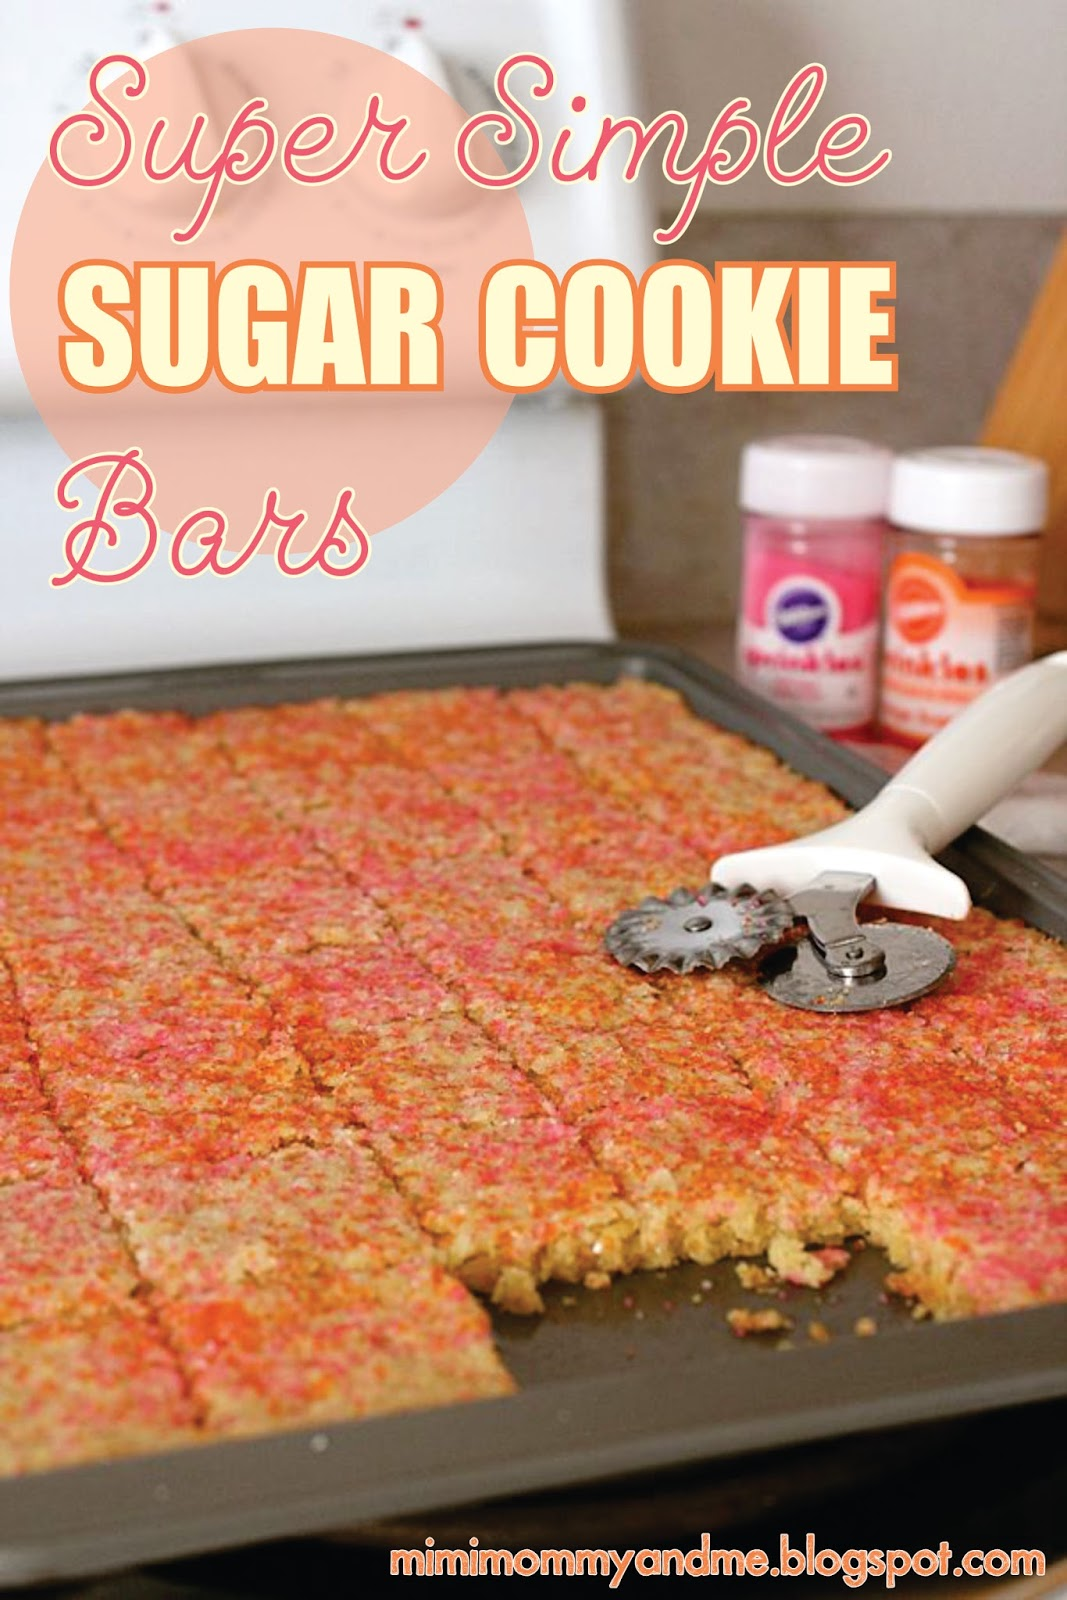 http://mimimommyandme.blogspot.com/2014/05/super-simple-sugar-cookie-bars.html